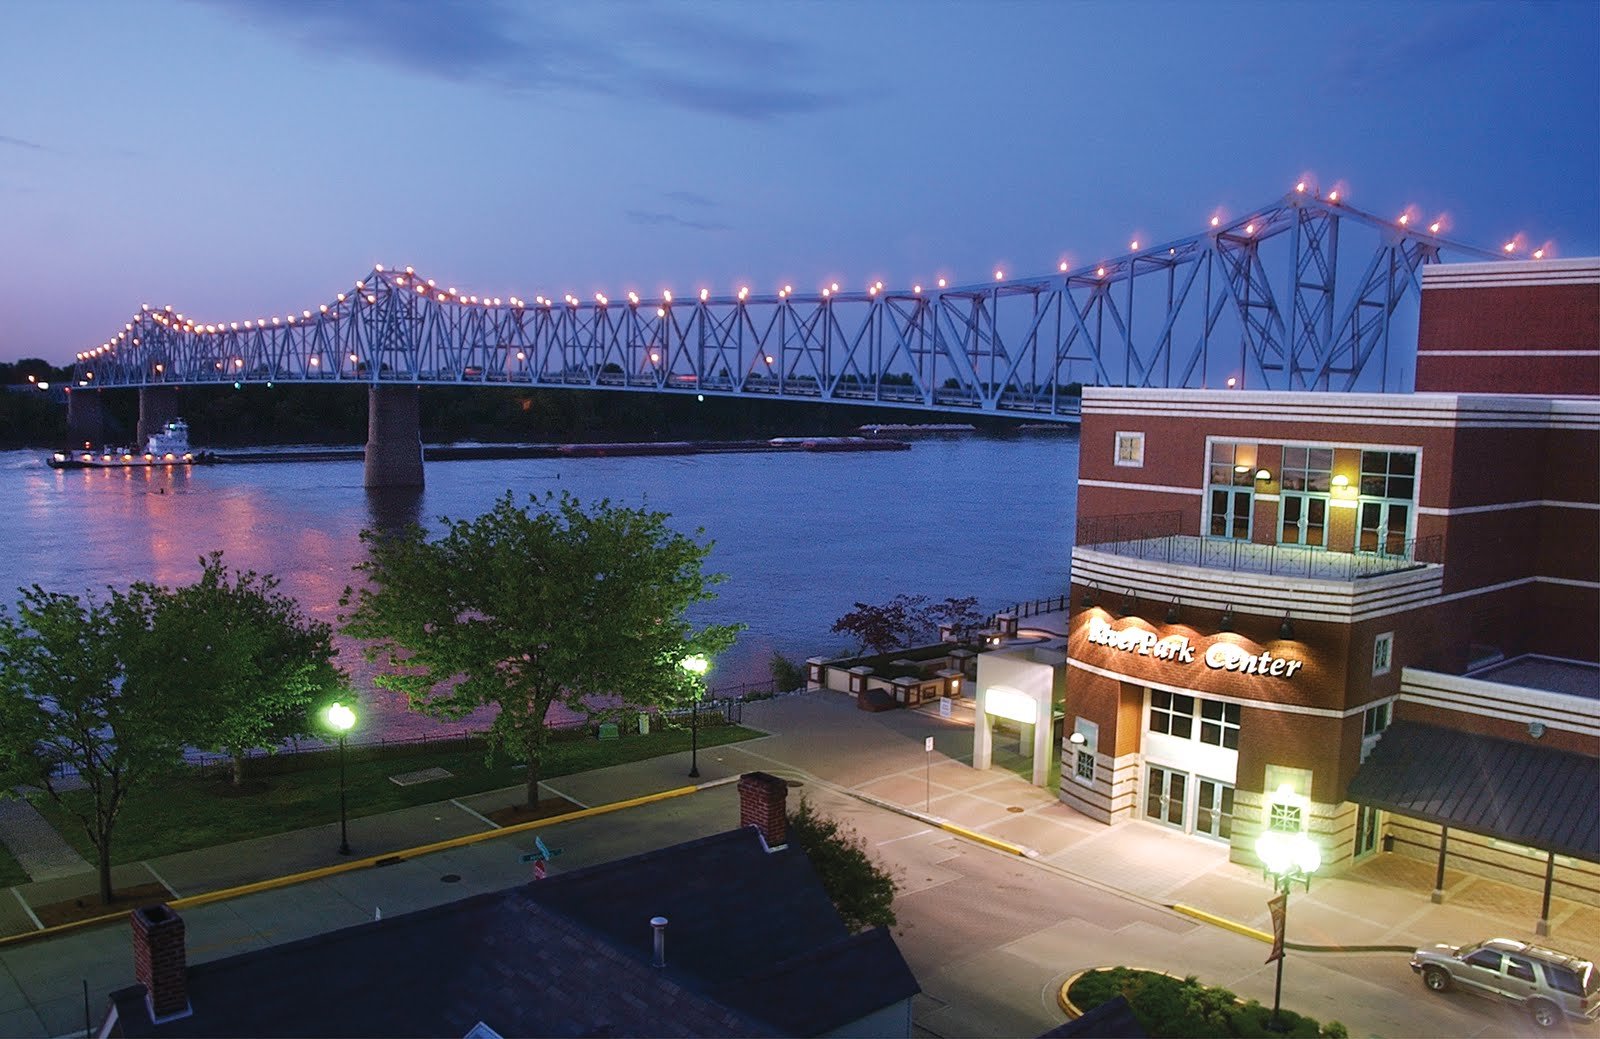 Gotta Go: Travel: This Is Owensboro?